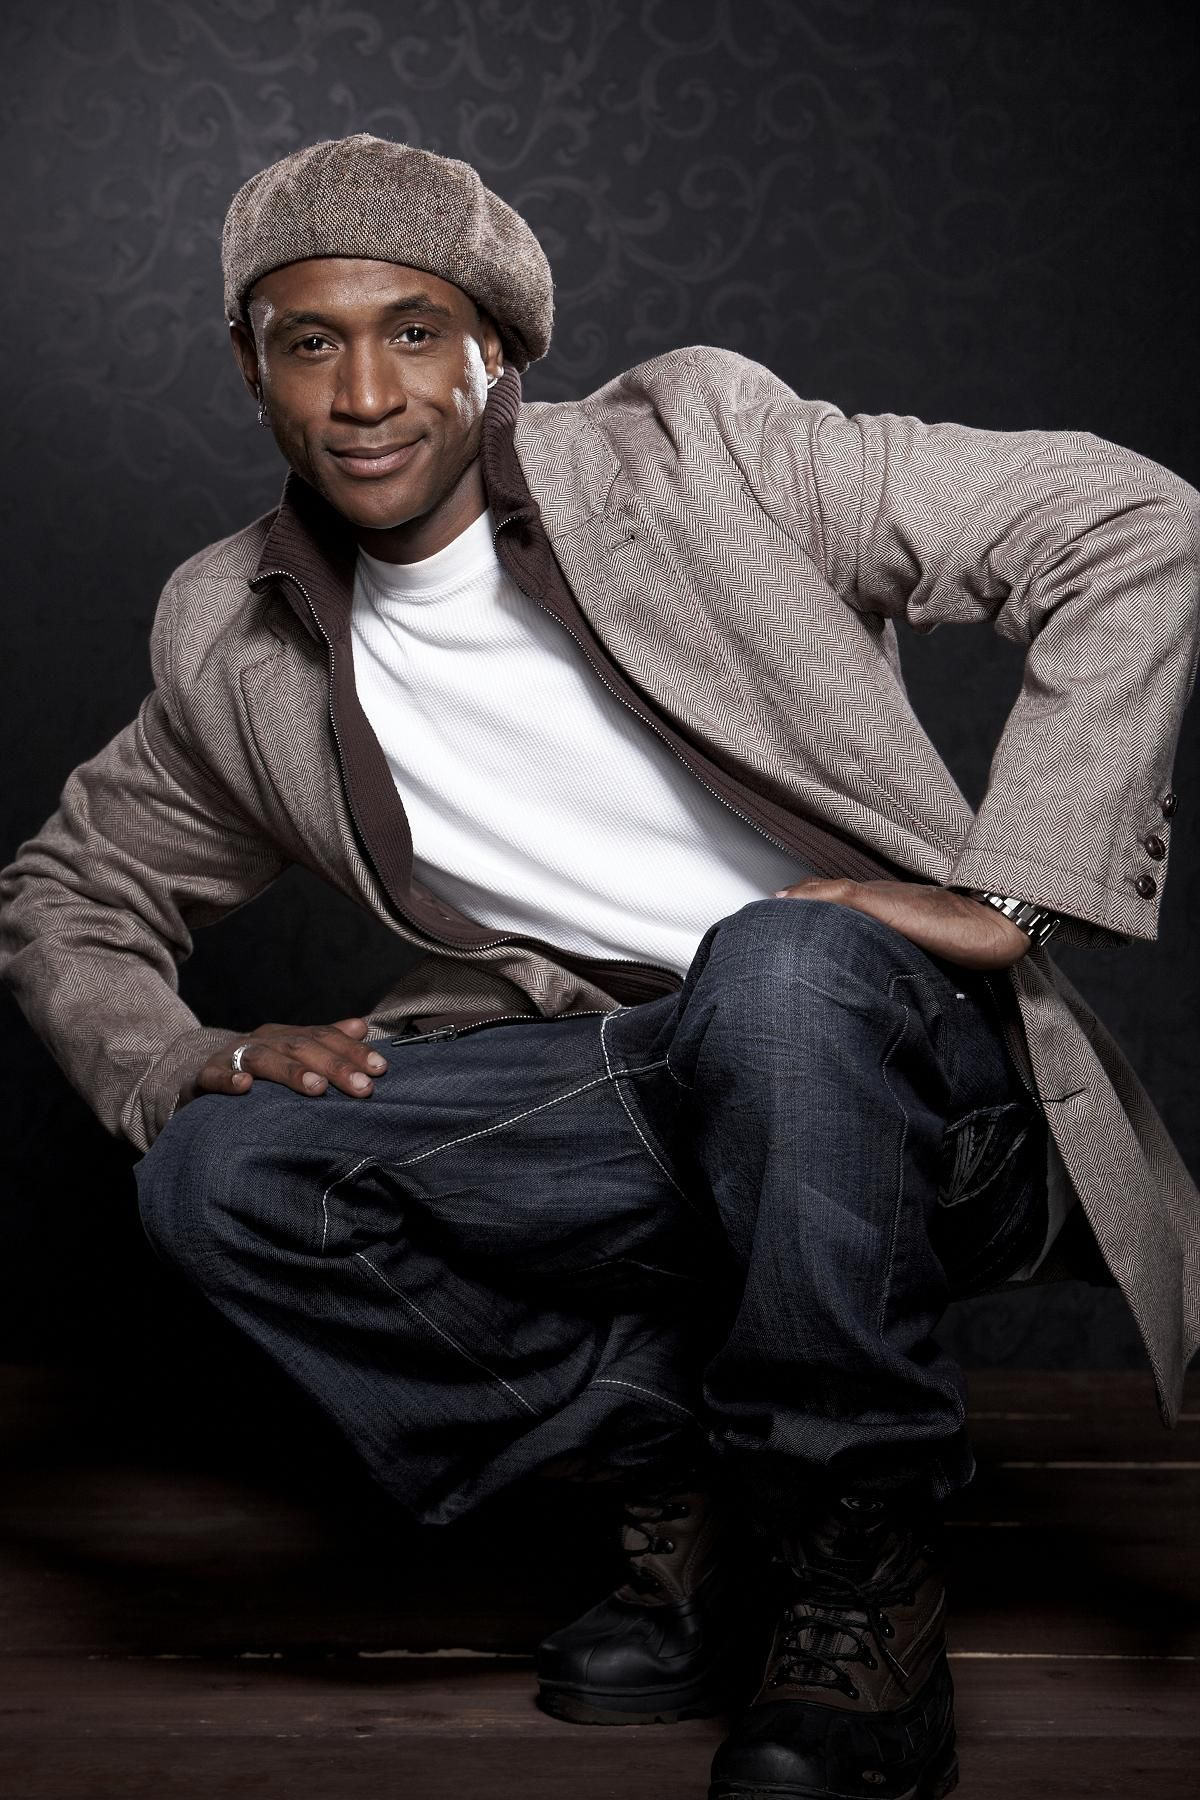 tommy davidson married